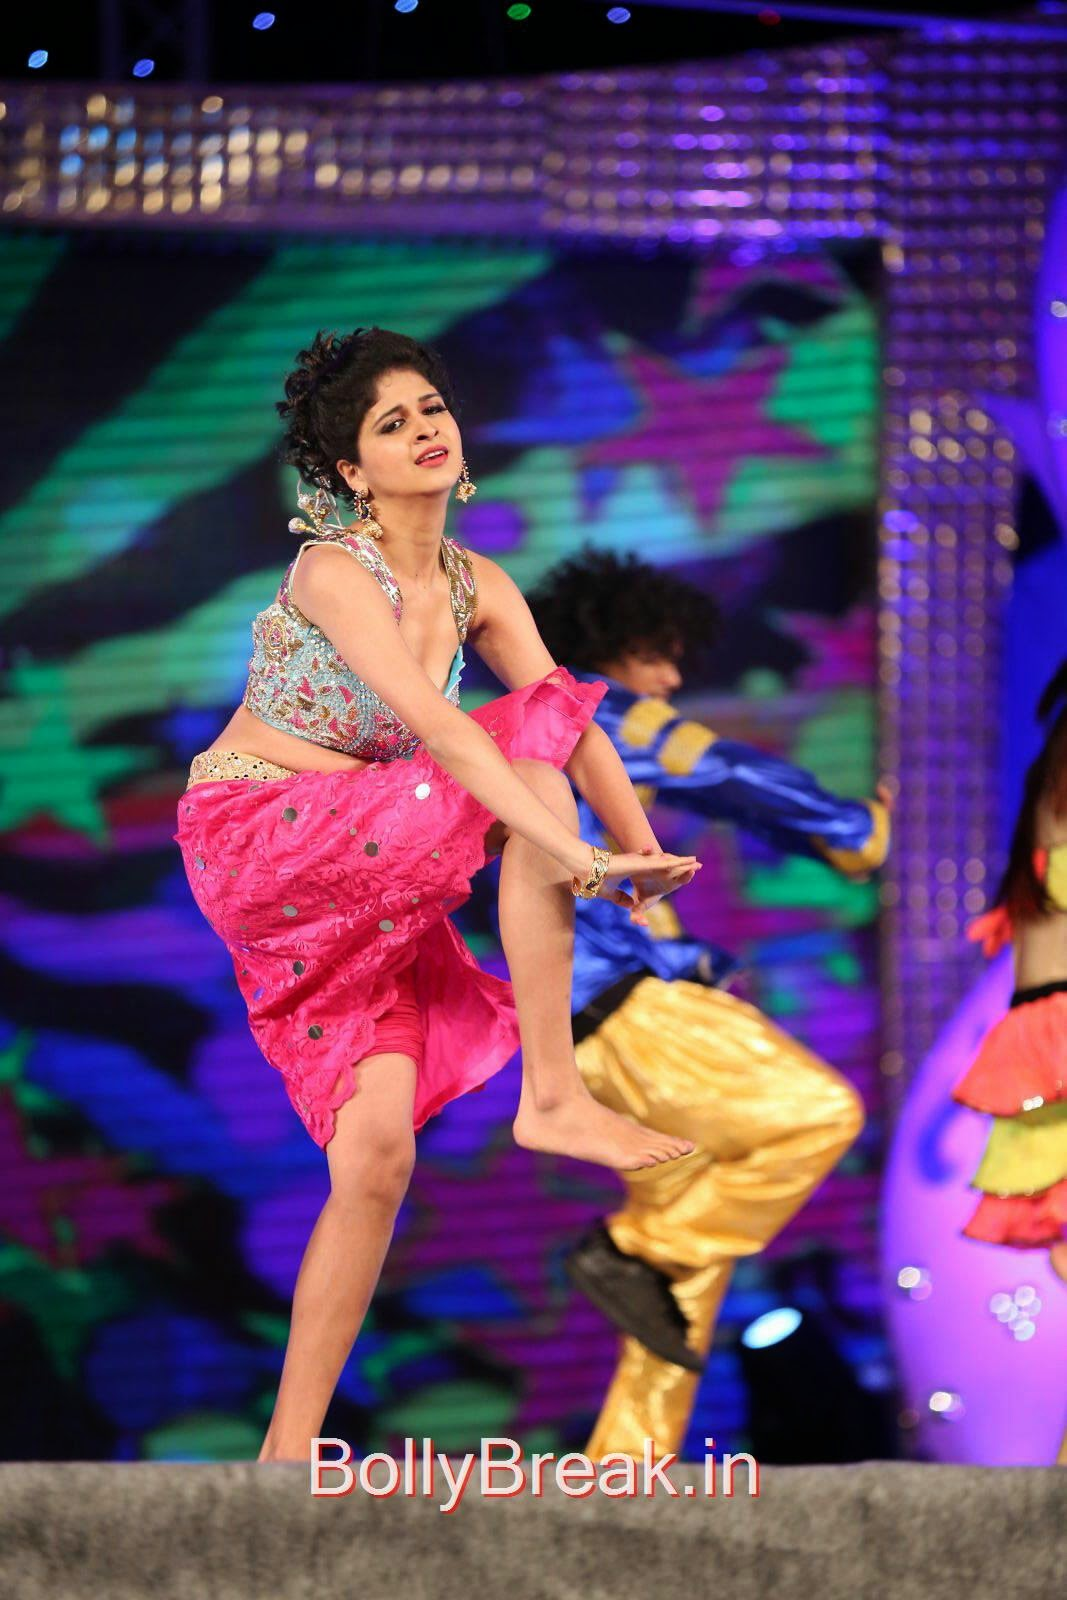 Heroines Dance Photos At Cinemaa Awards 2012: Actress Naveena Hot Dancing Stills From Gama Music Awards